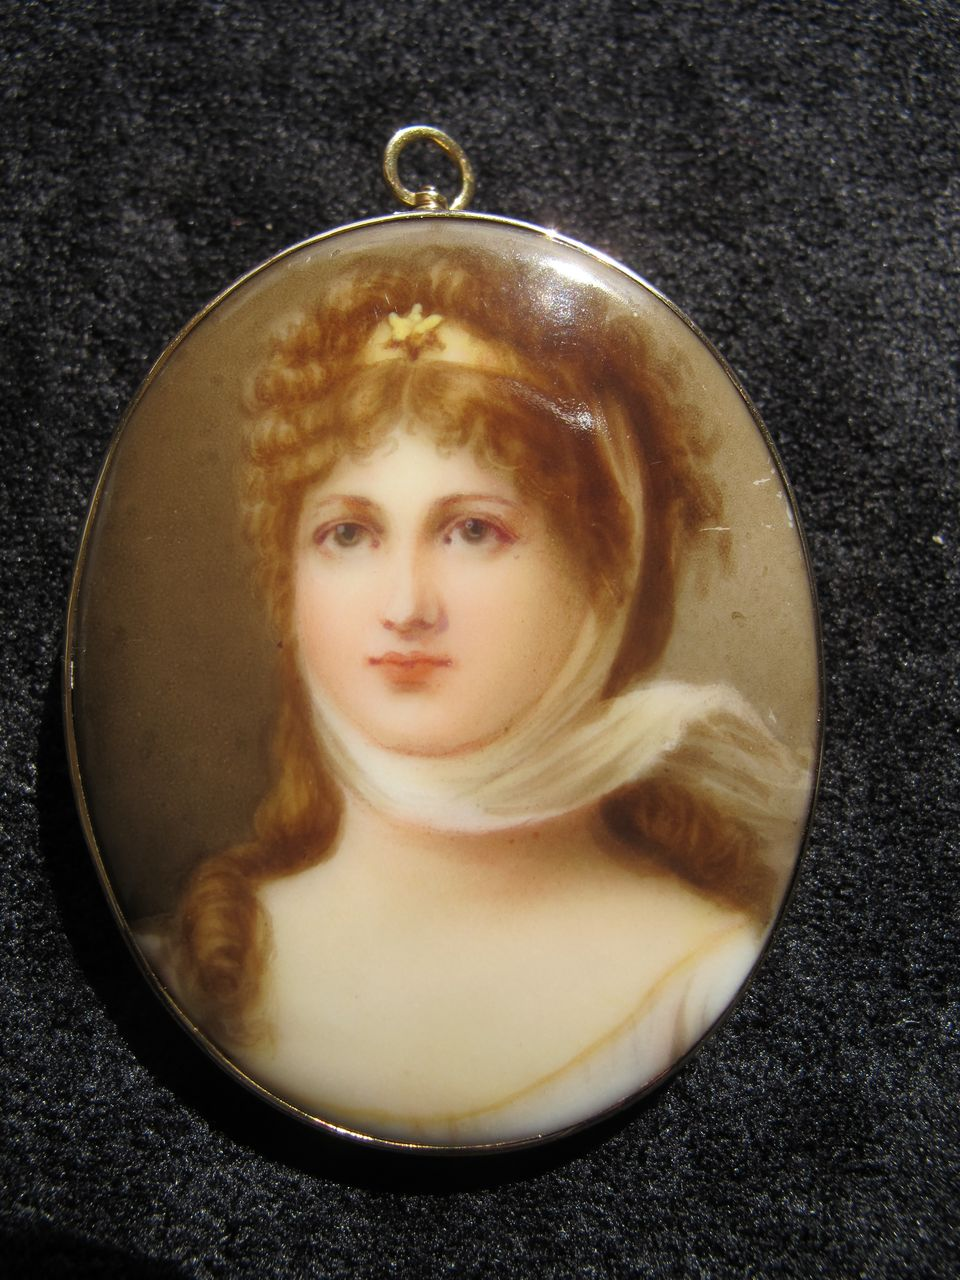 Handpainted porcelain portrait brooch 10K frame - Queen Louisa Prussia